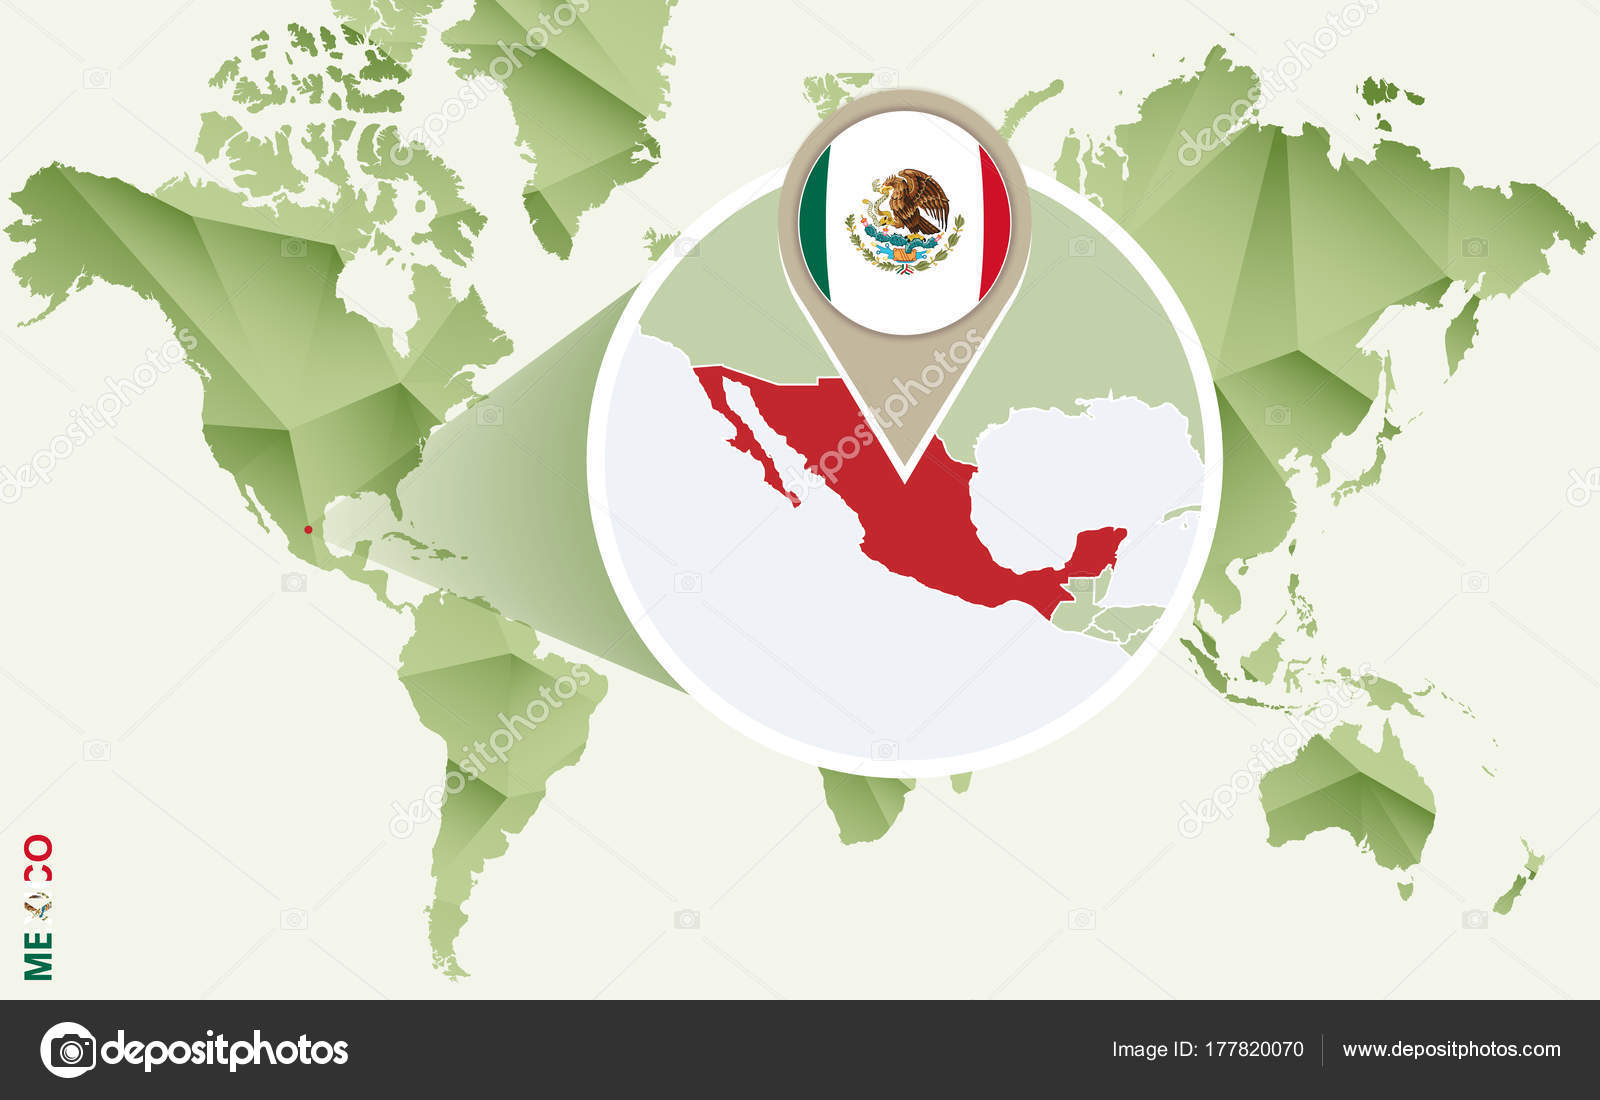 Infographic for Mexico, detailed map of Mexico with flag ...